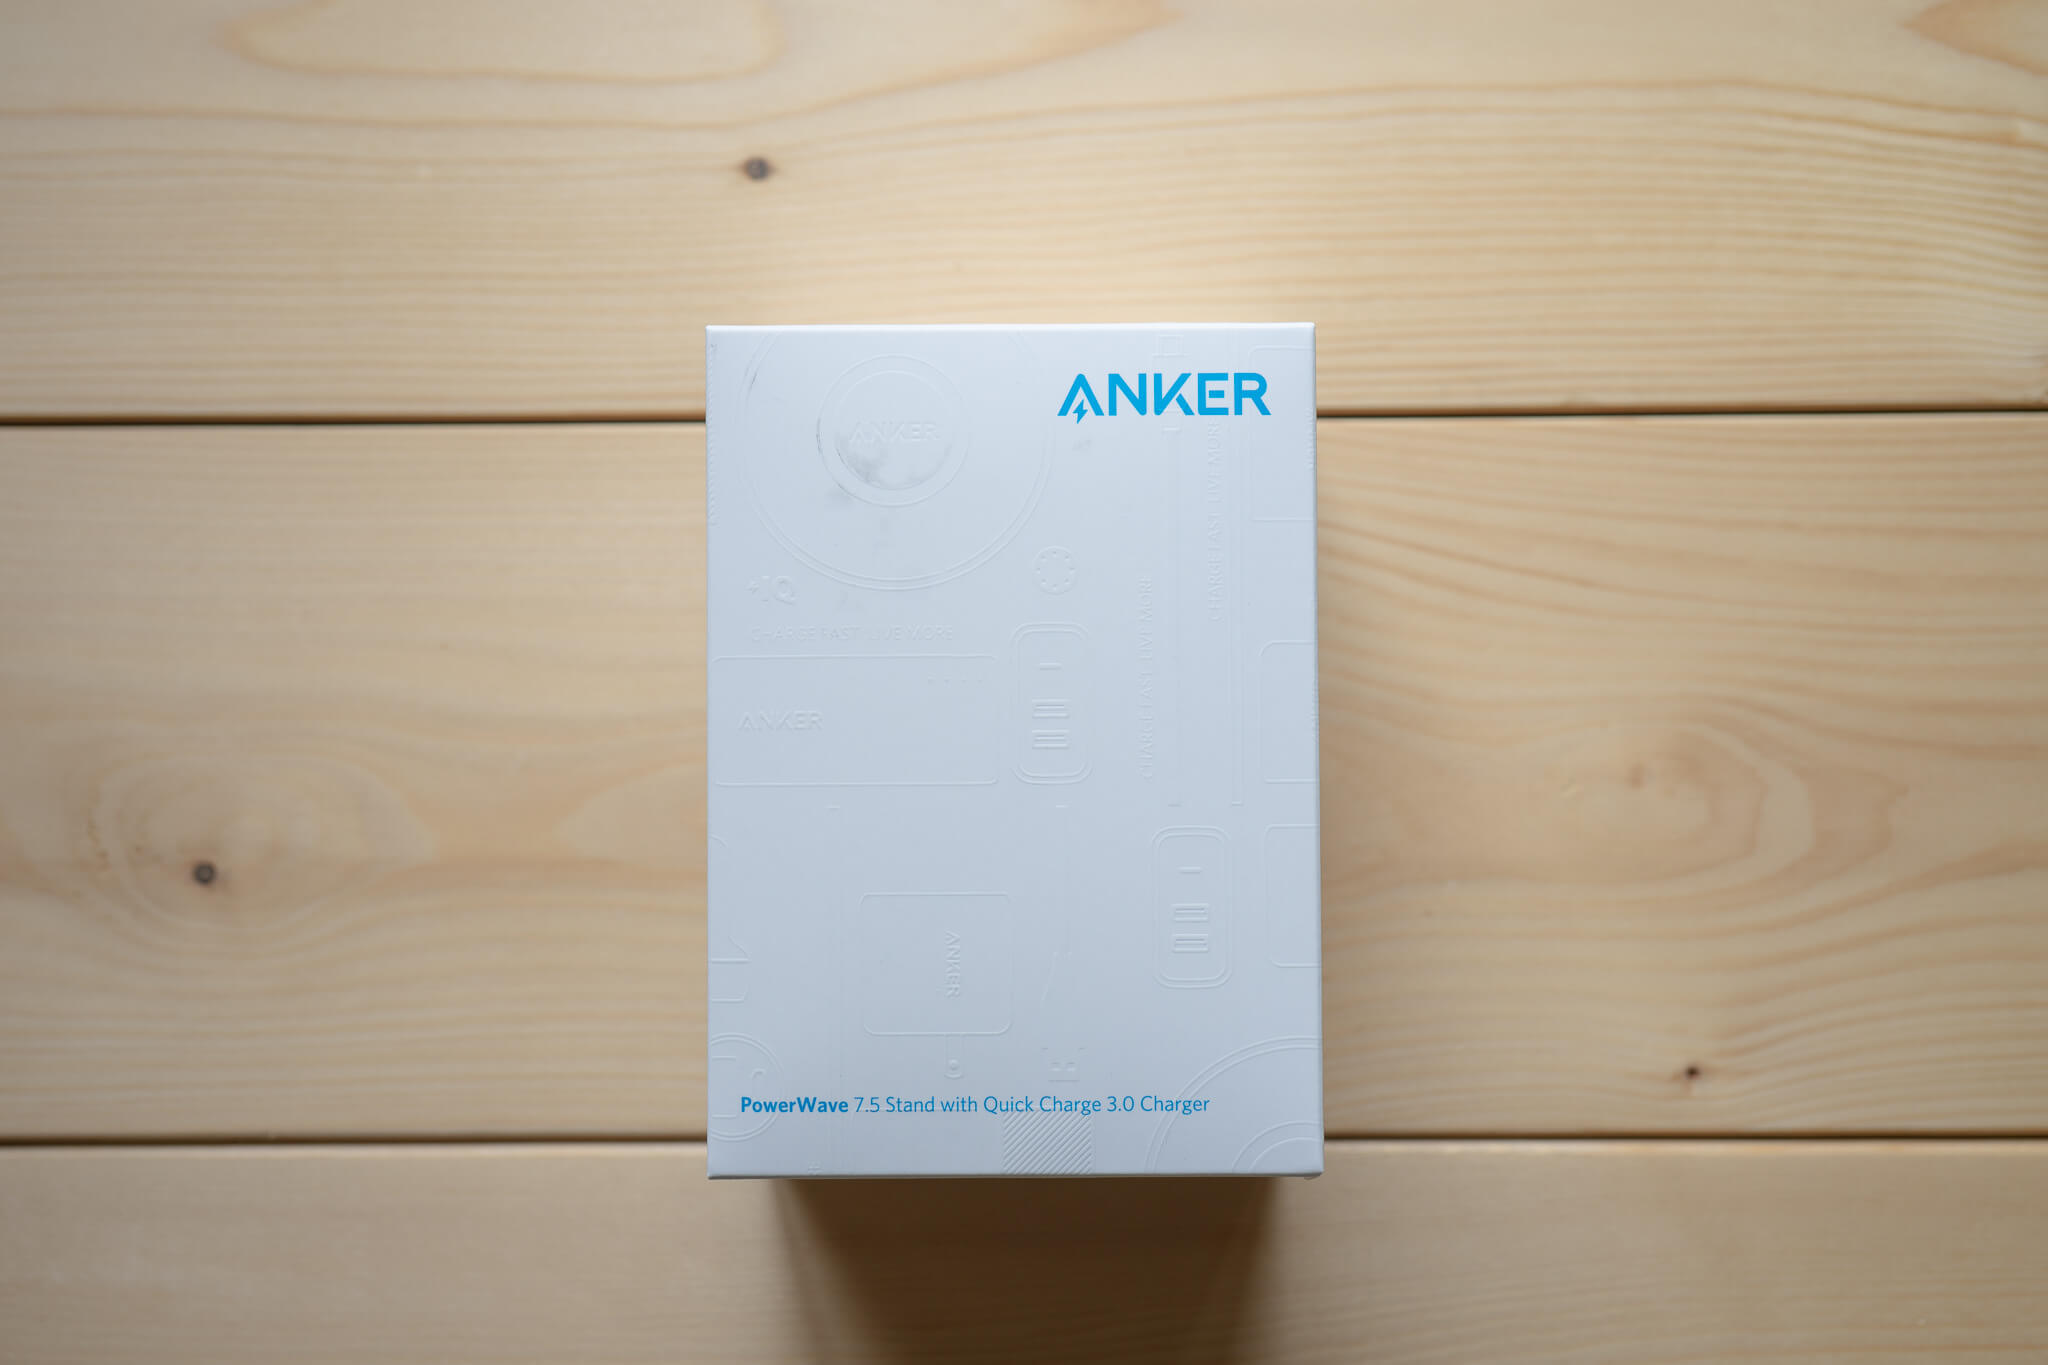 180923 anker power wave 7 5 stand 9